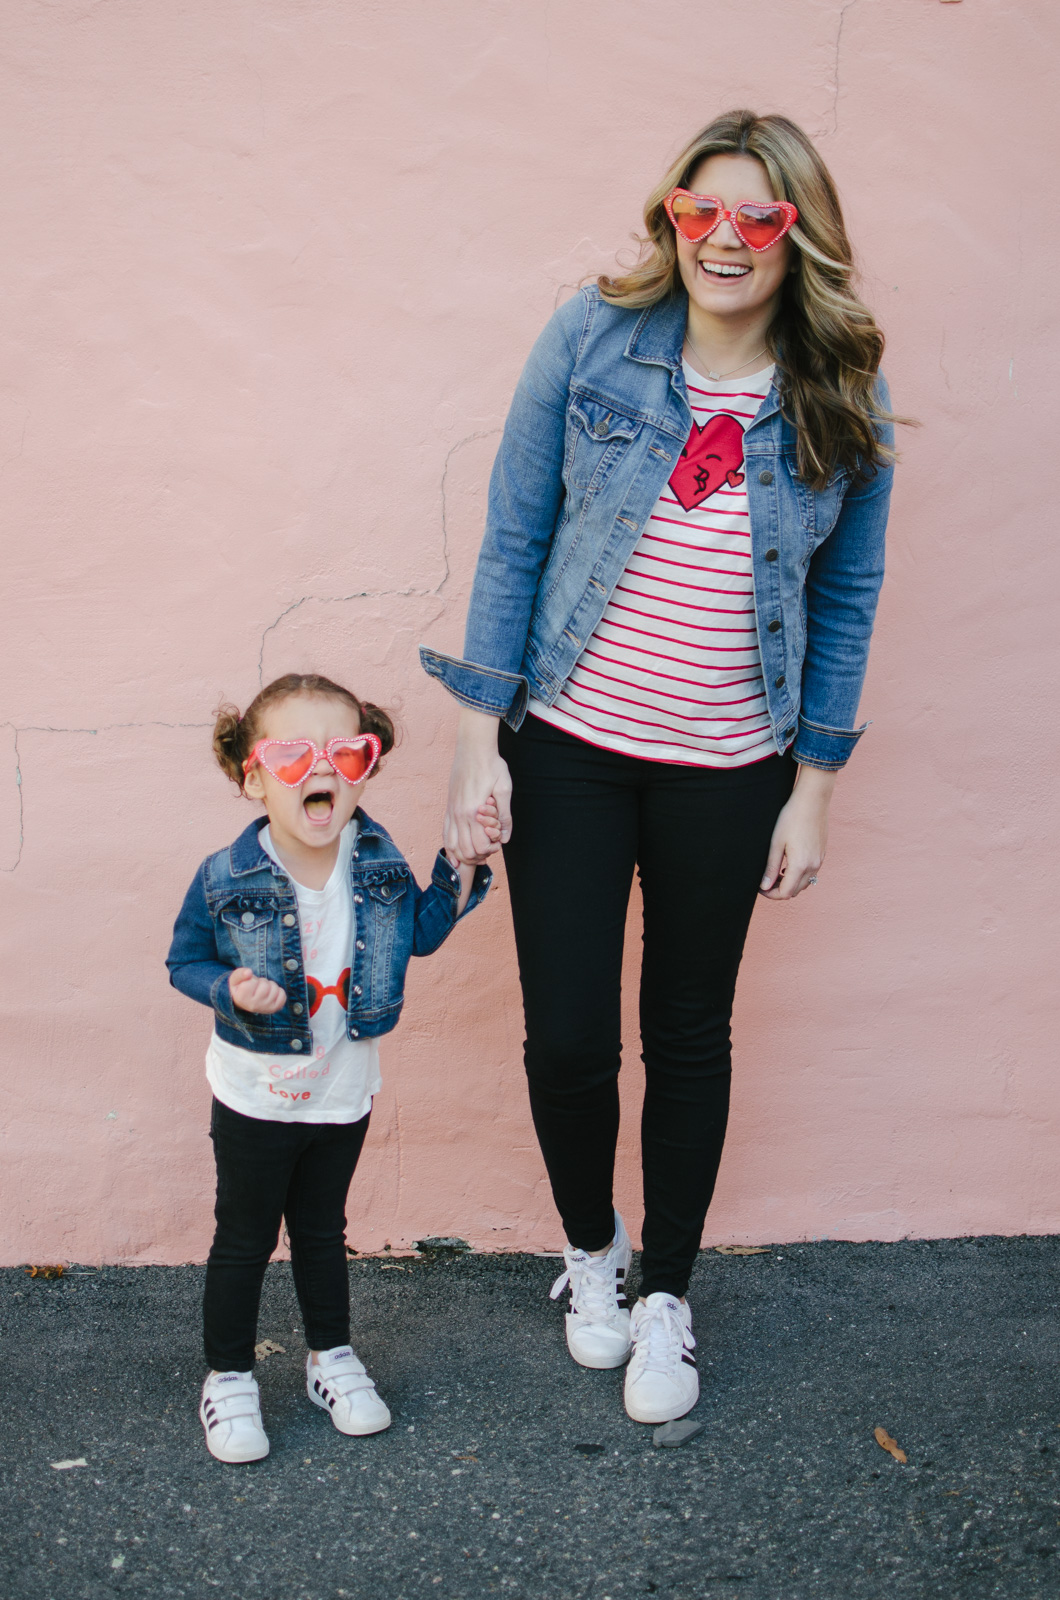 mommy and me outfits valentines day - mommy and me outfits matching spring | Shop our look and see more mommy and me outfits at bylaurenm.com!